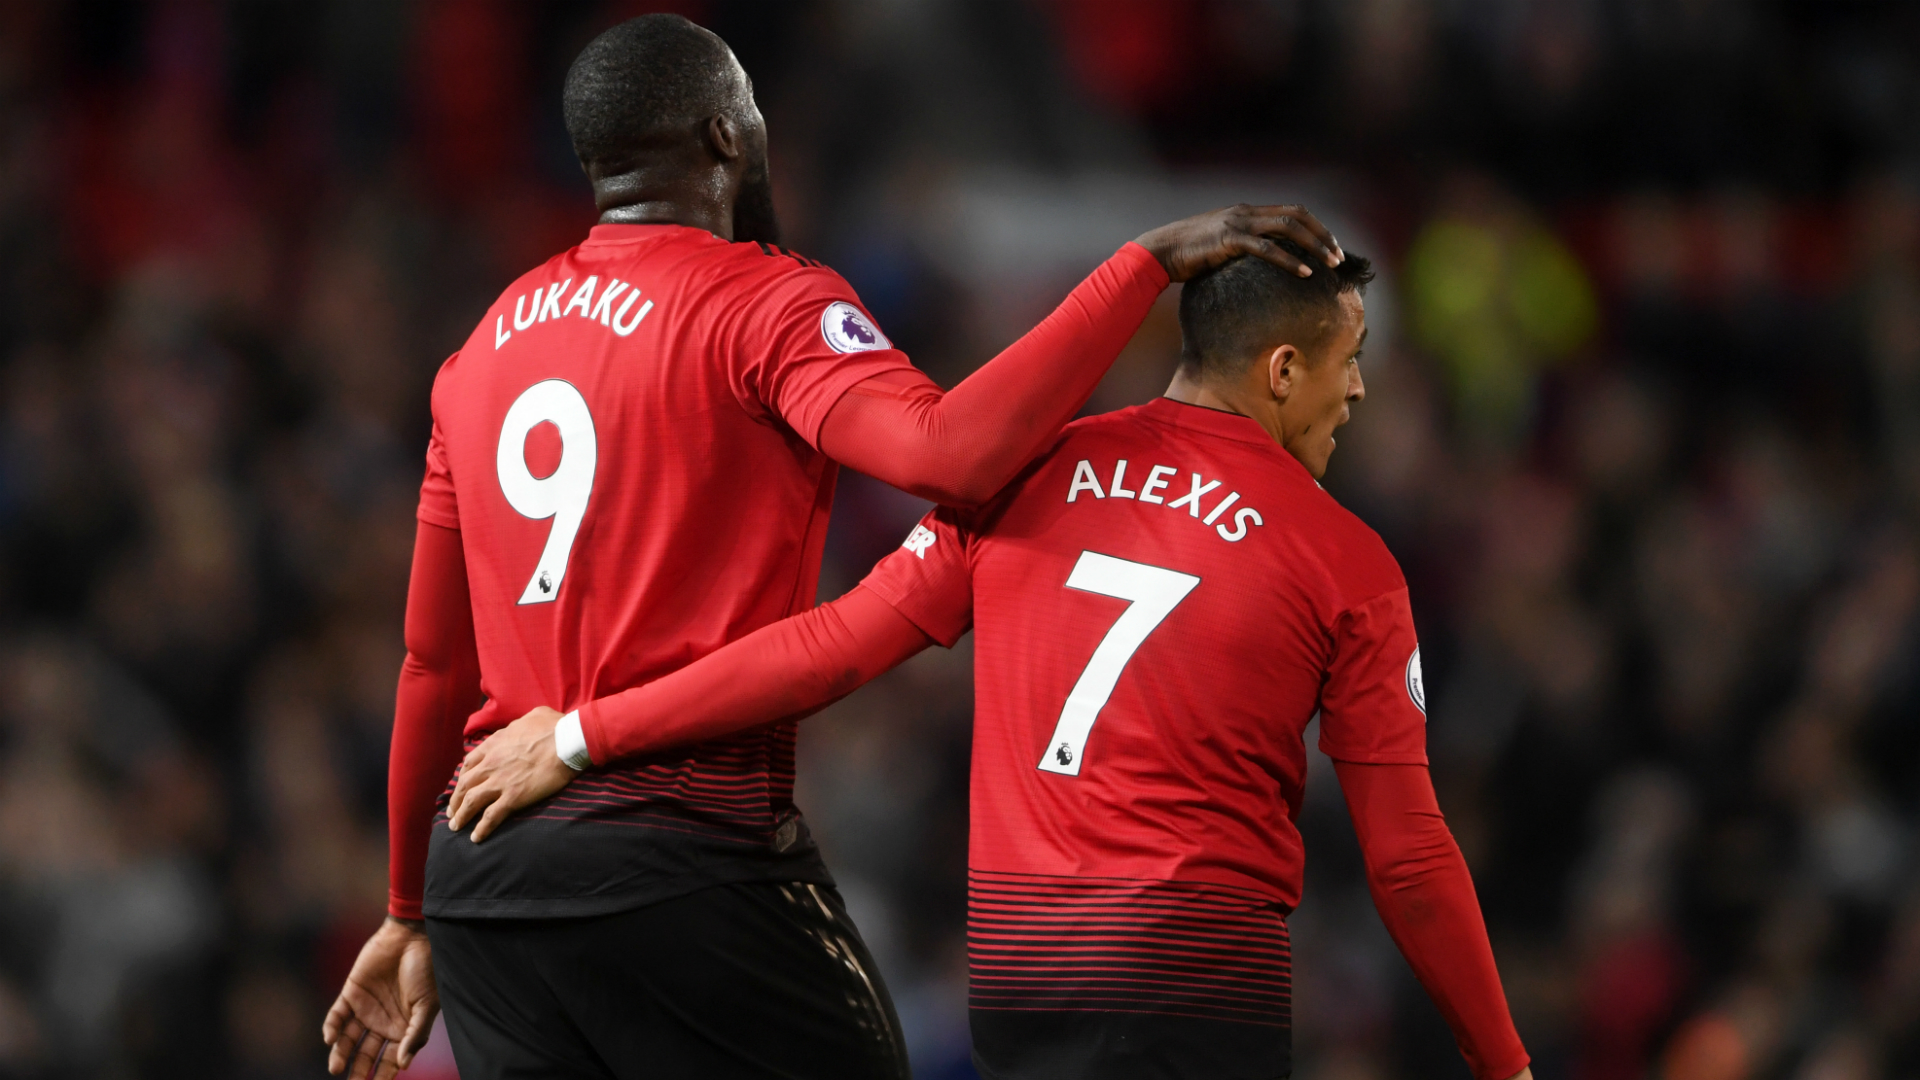 Image result for alexis sanchez and lukaku 2019